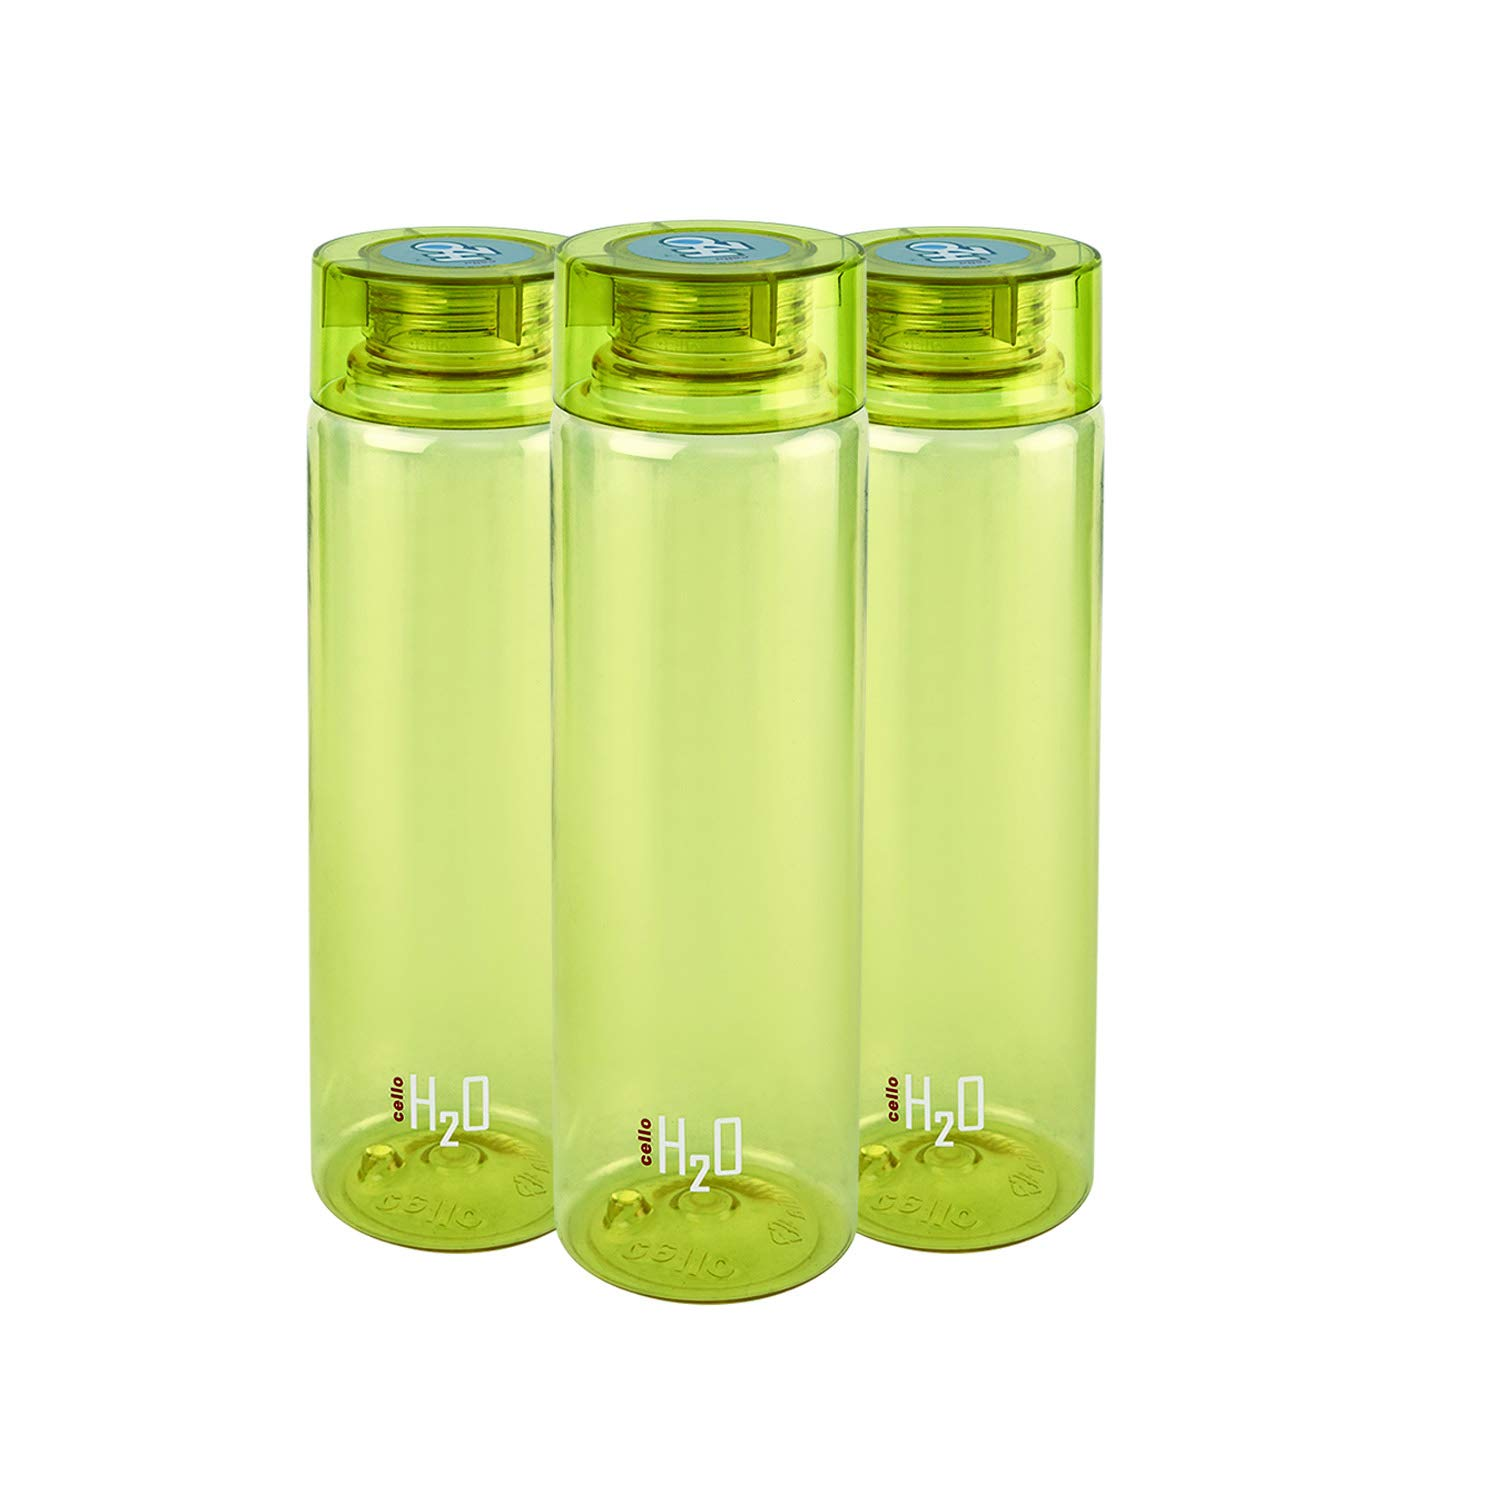 Cello H2O Round Plastic Water Bottle, 750ml, Set of 3, Olive Green